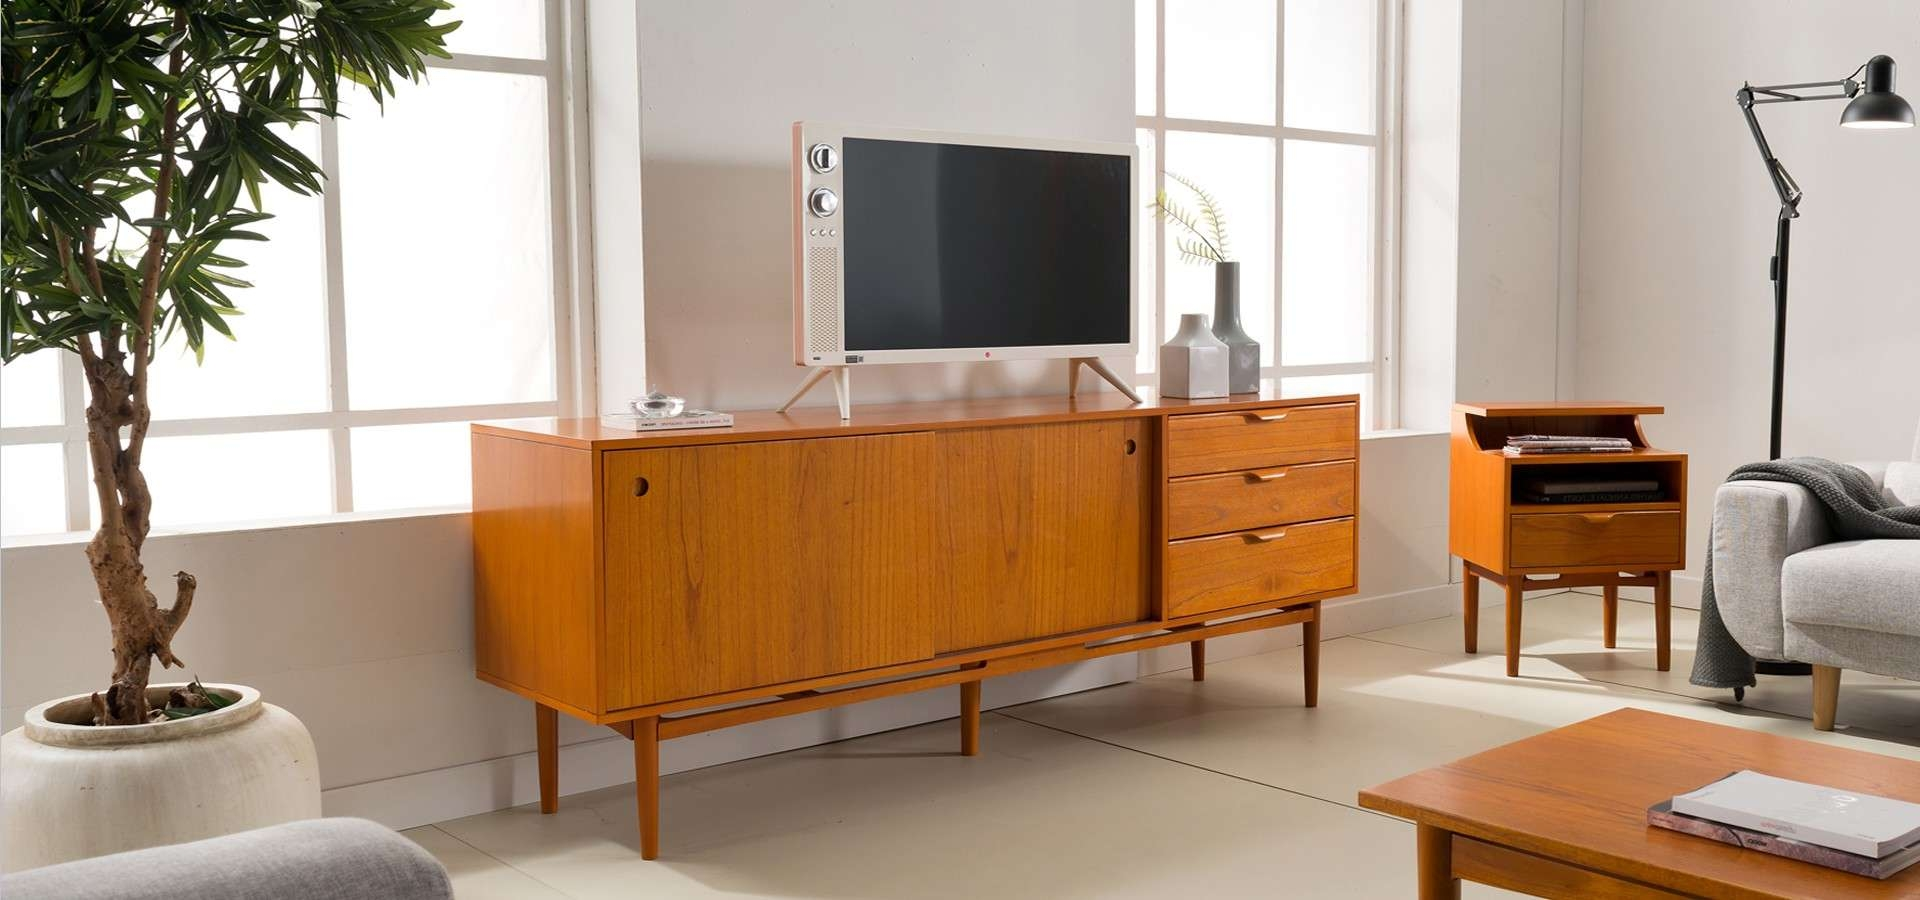 Vintage Sideboard (tv Cabinet) | Furniture Shop Singapore Within Danish Retro Sideboards (View 9 of 20)